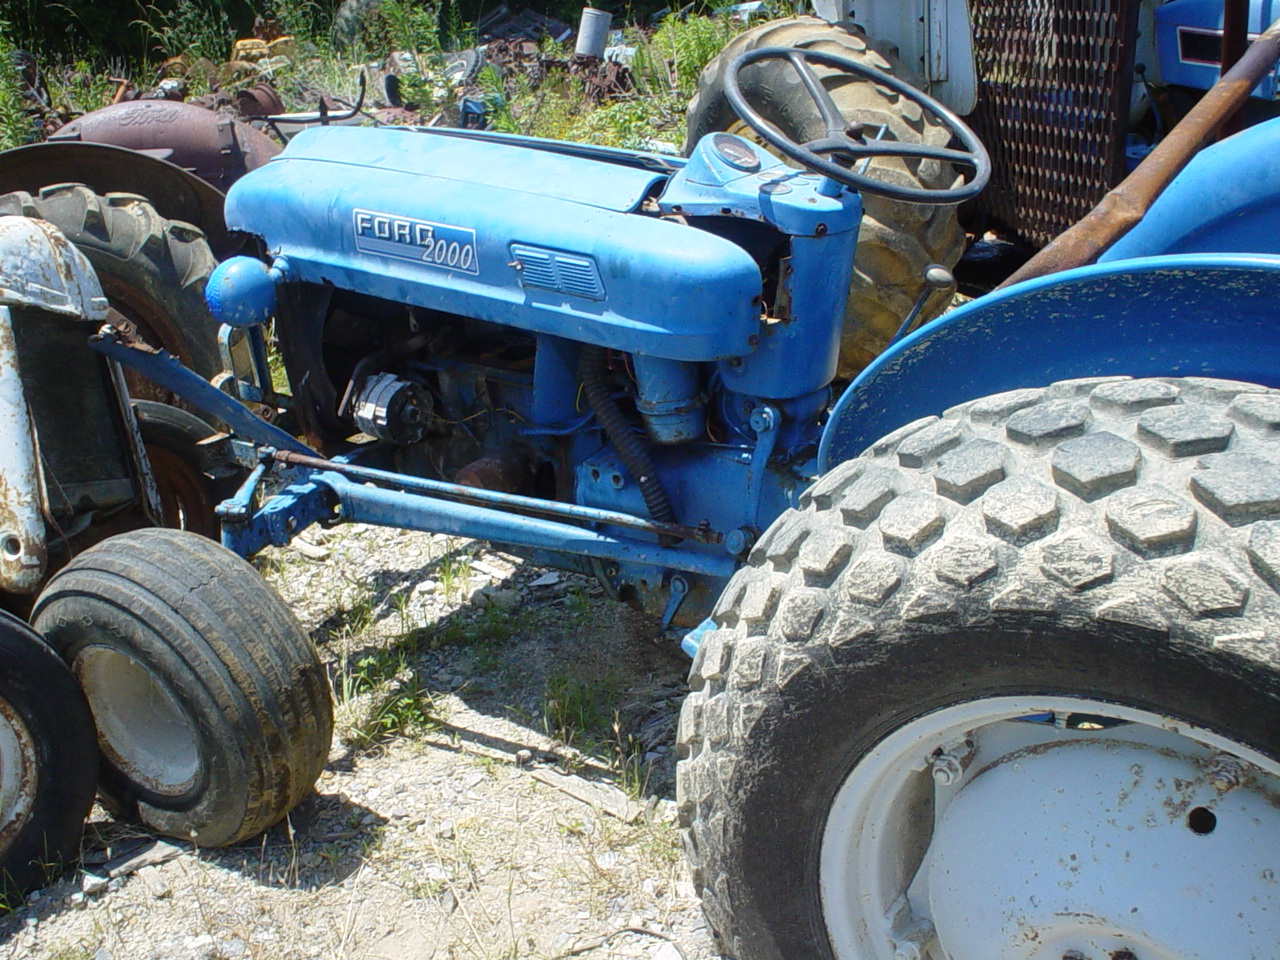 Ford. Ford 1910 Tractor 20004cyl. Ford. Ford 555 Backhoe Front Axle Diagram At Scoala.co